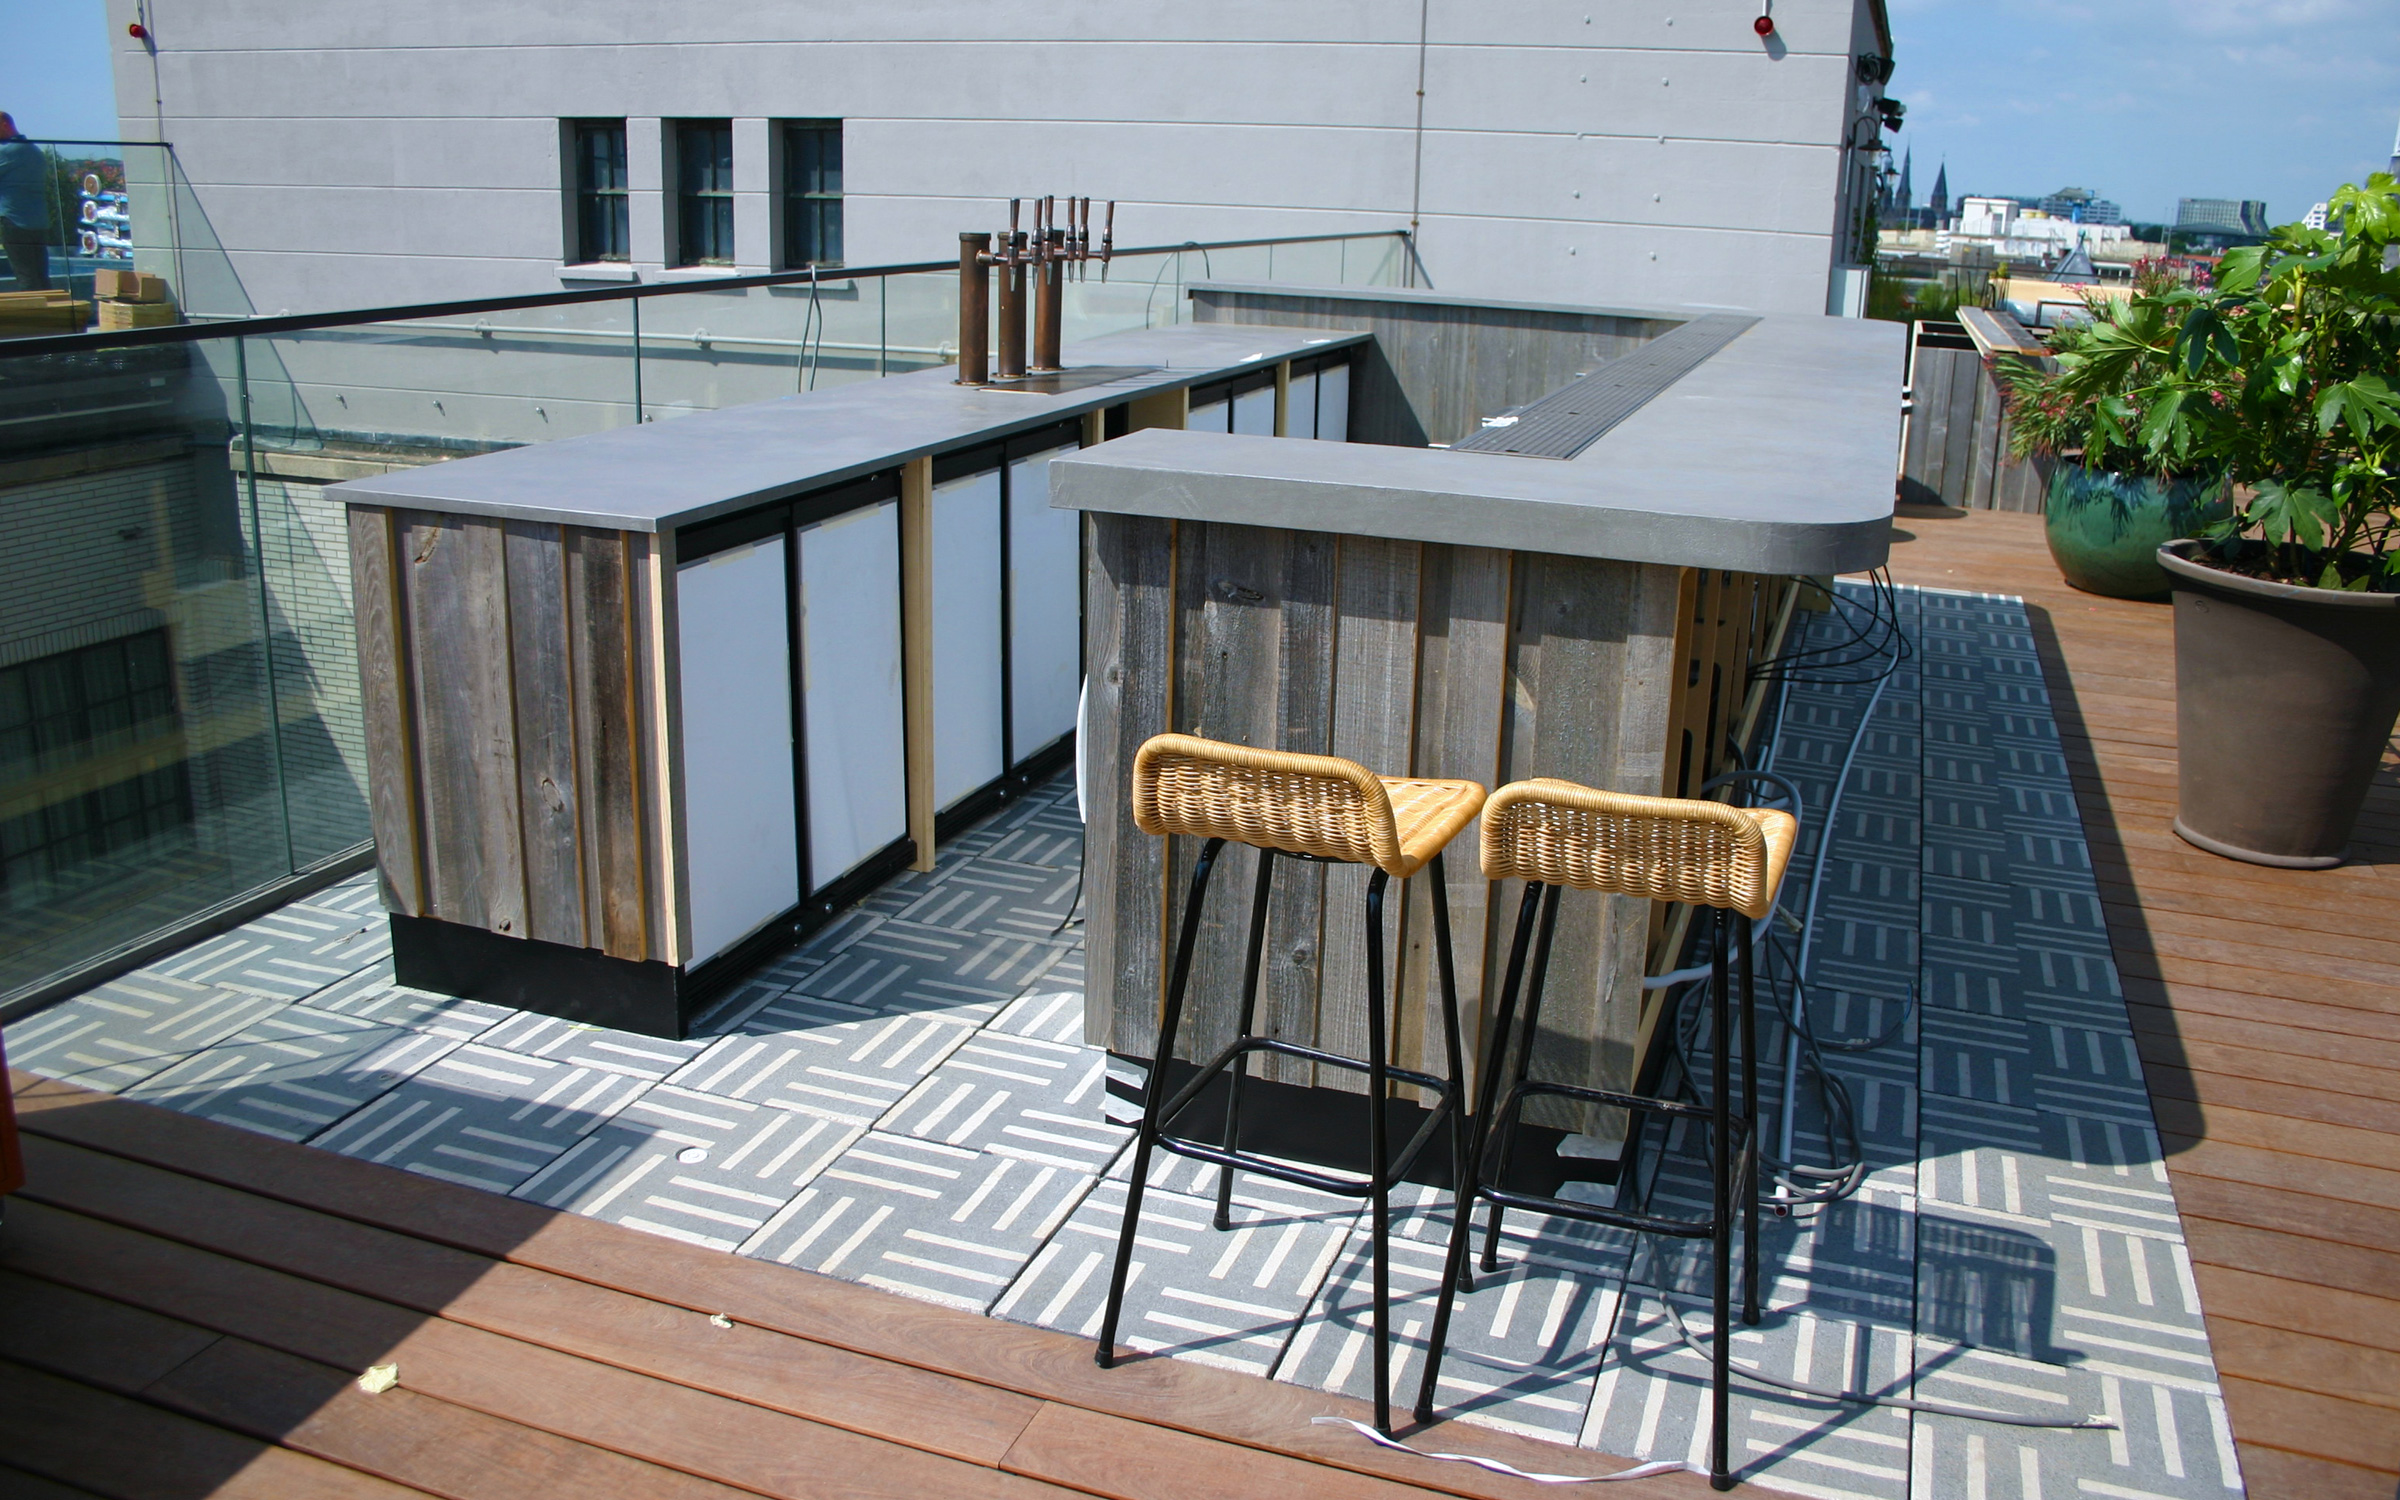 Roof garden with a bar